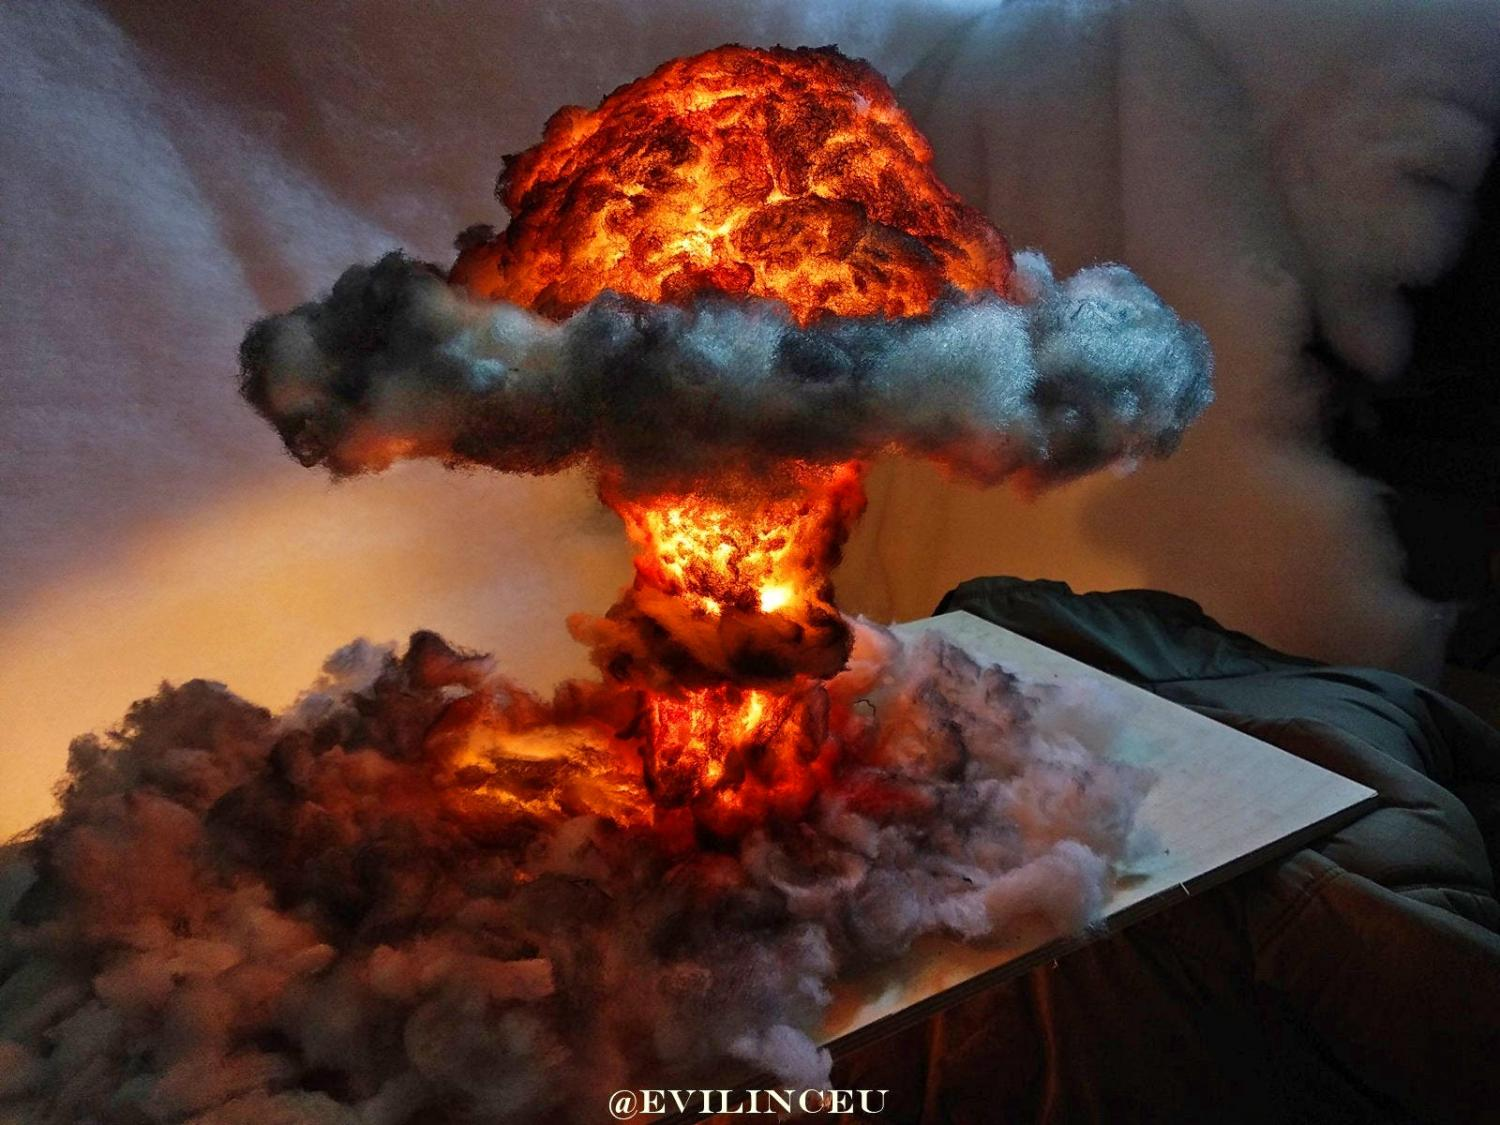 Nuclear Explosion Bomb Lamp - Mushroom cloud night-light diorama lamp